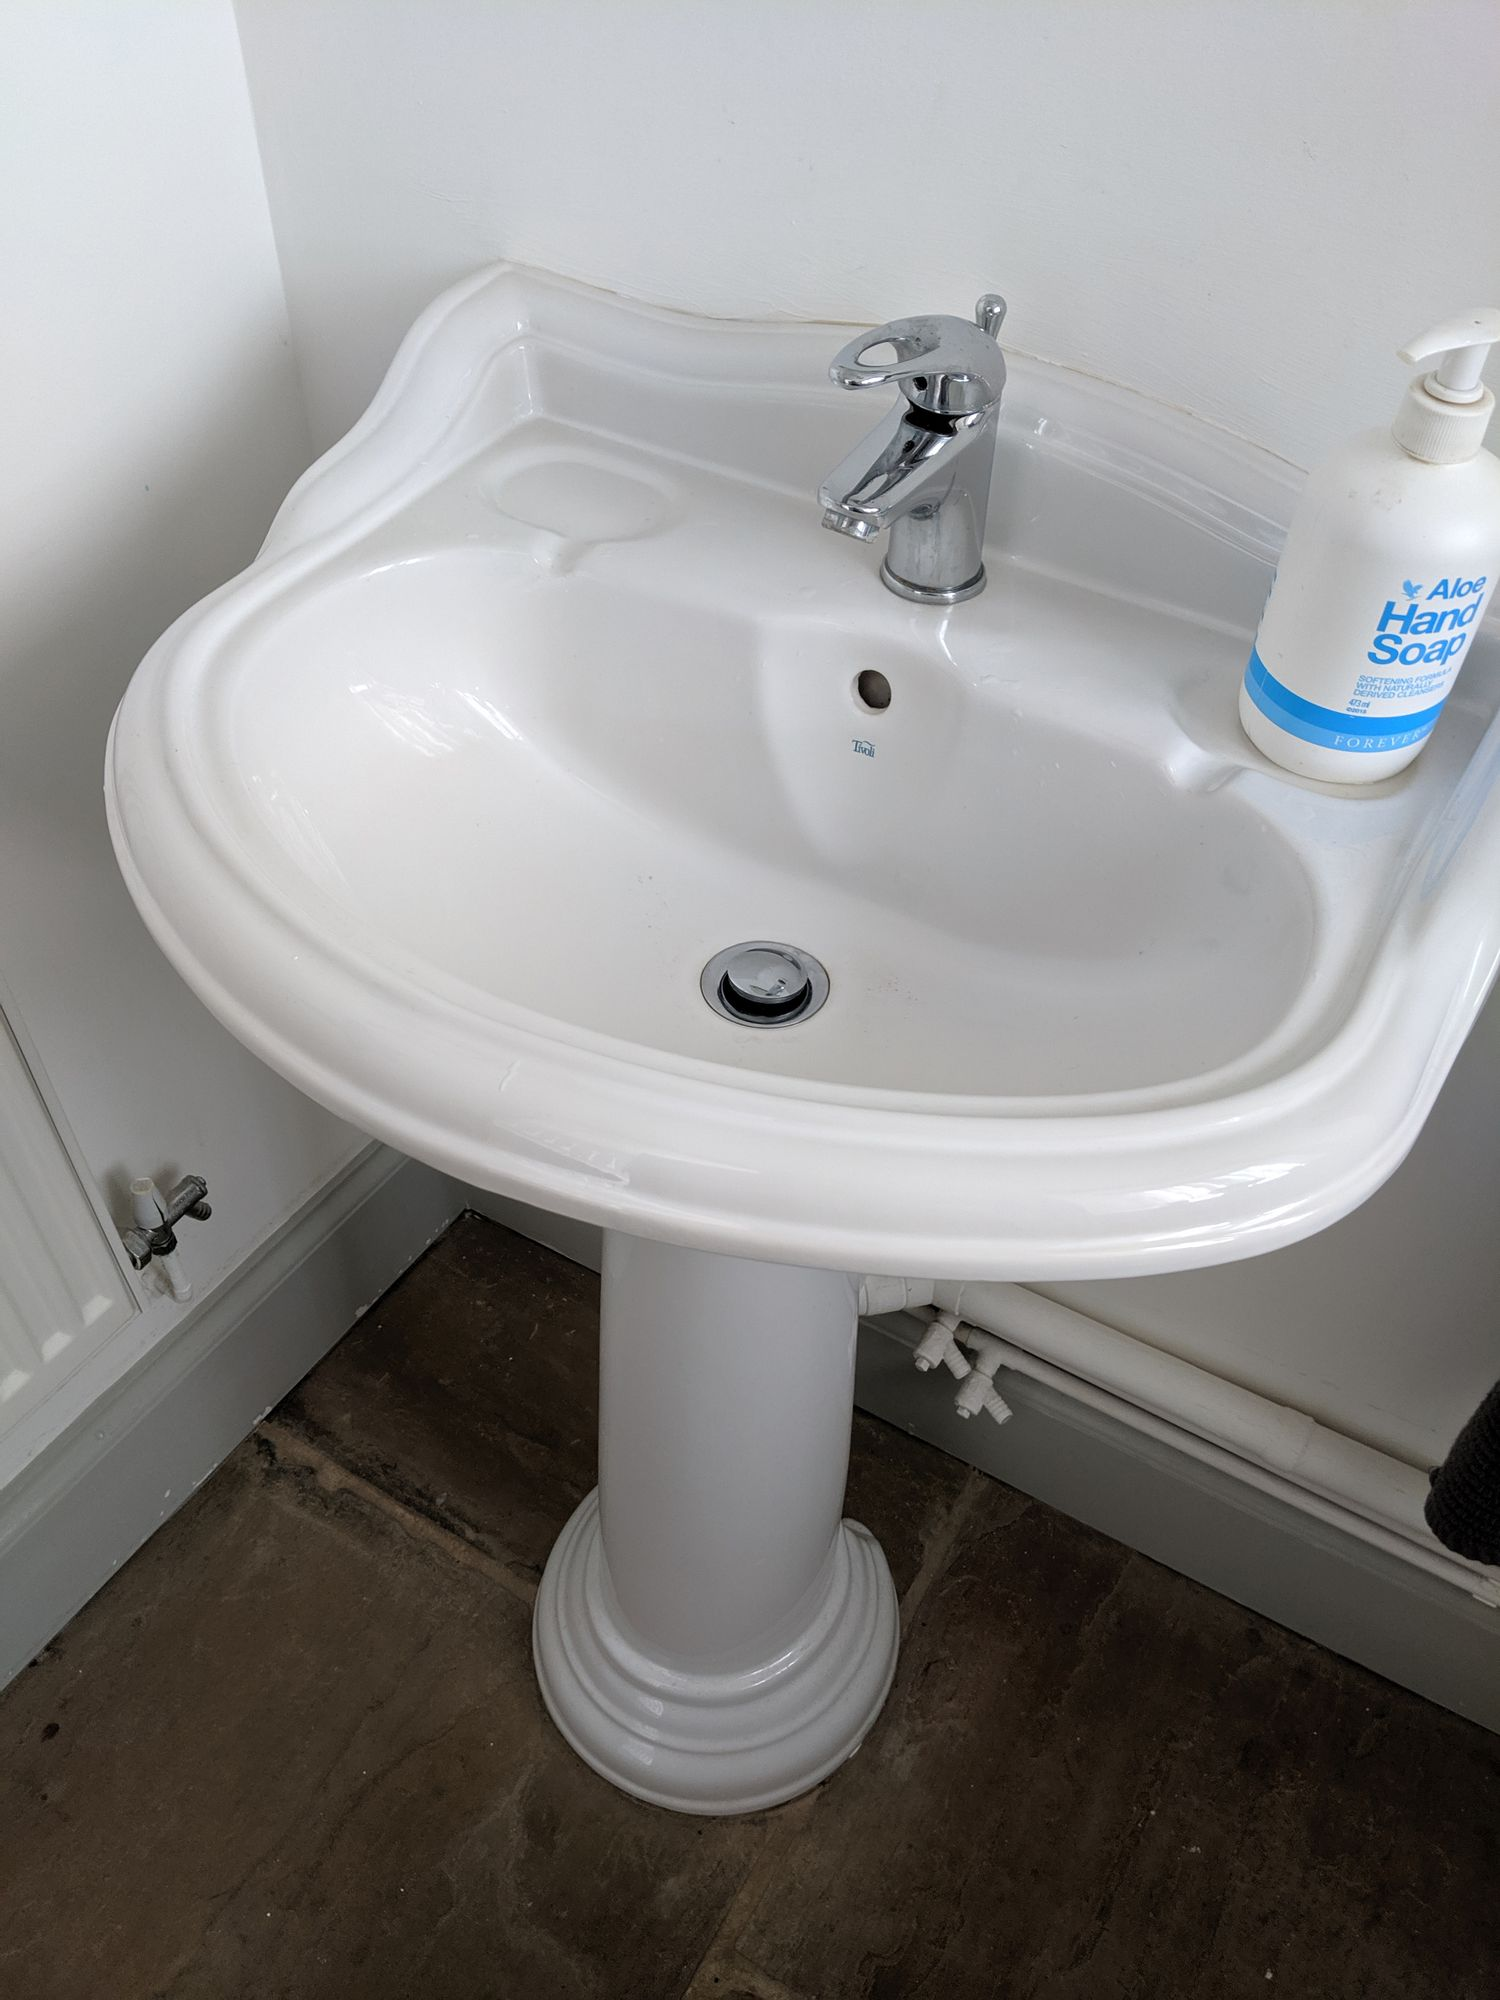 The overlarge pedestal sink before the room was changed.